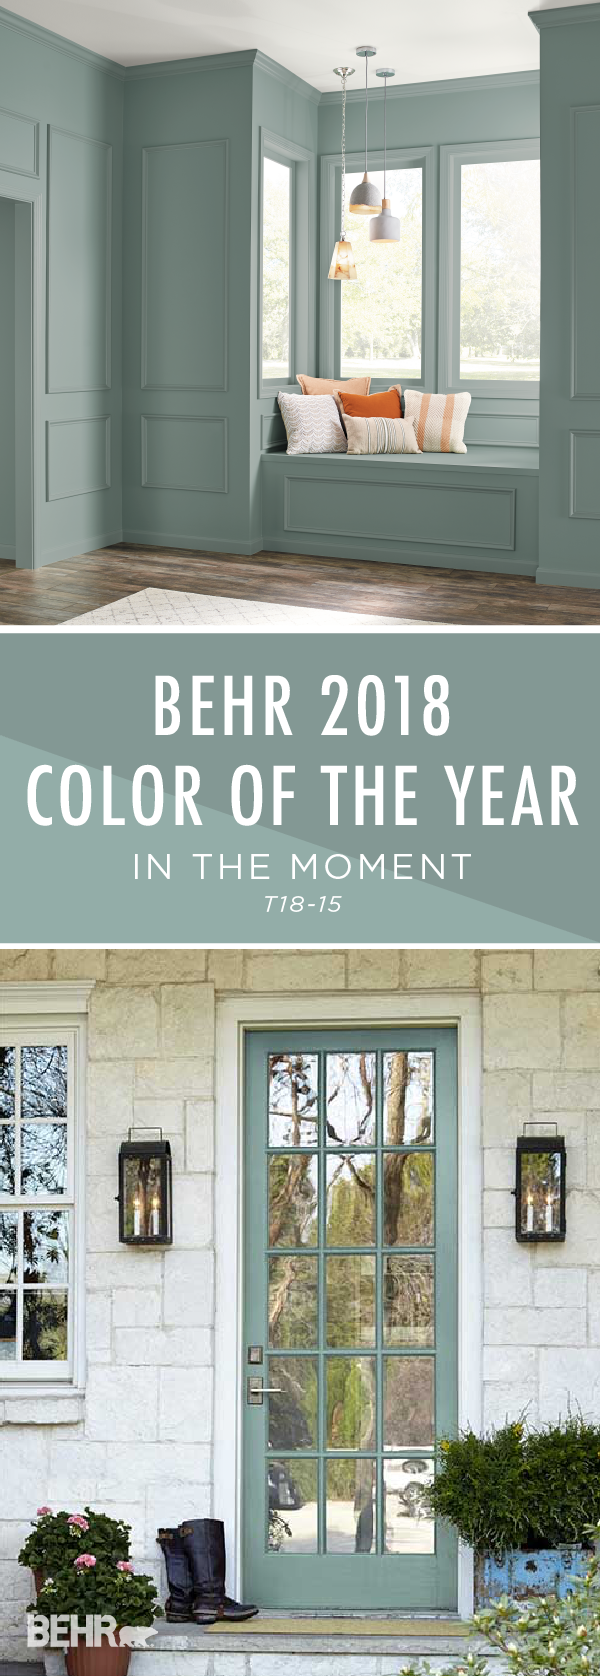 Introducing The Behr 2018 Color Of Year In Moment With Undertones Blue Gray And Green This Calming Paint Helps To Create A Relaxing